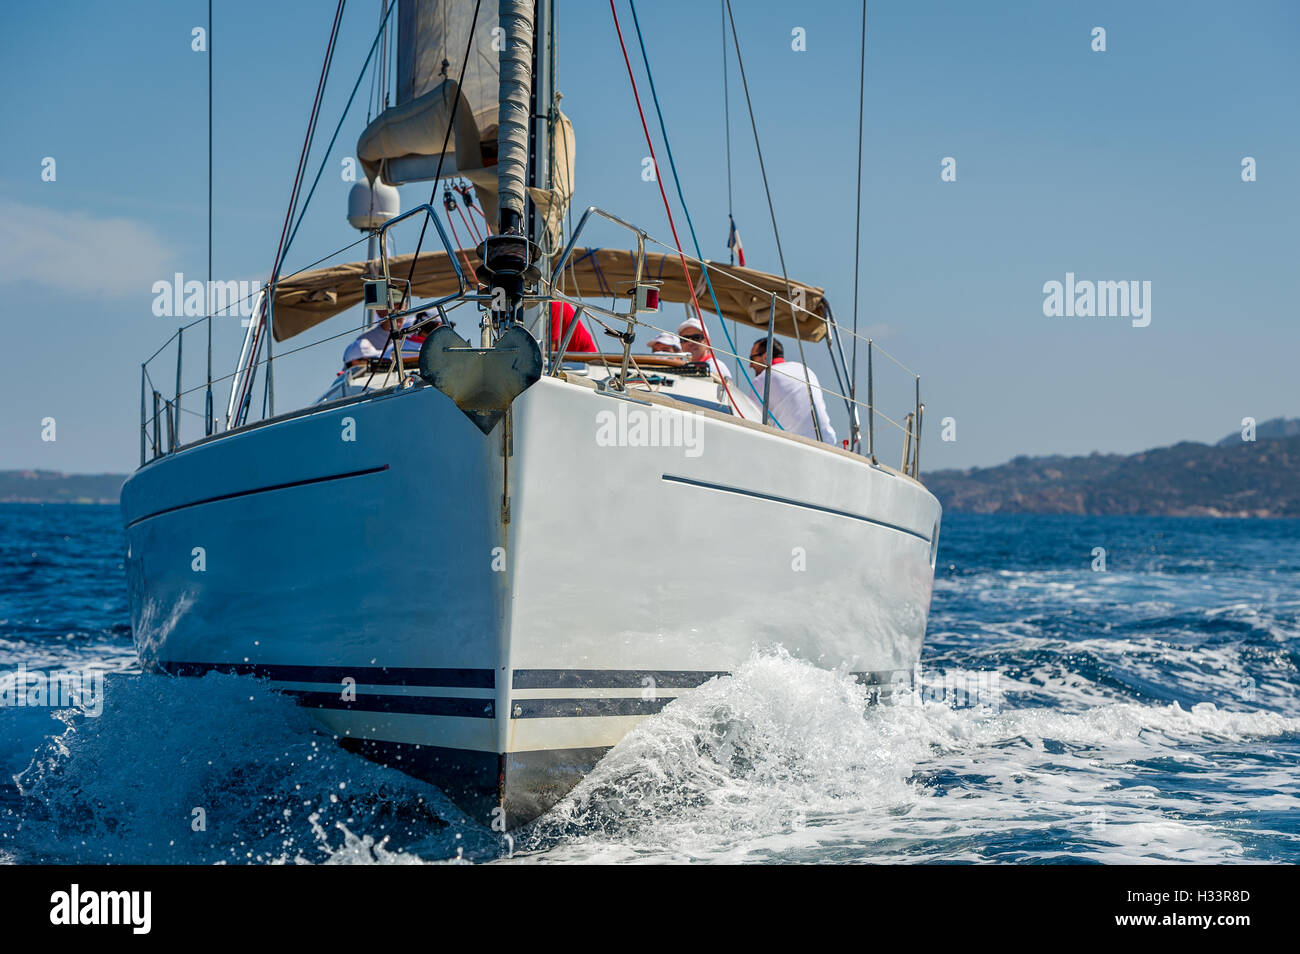 Sailing boat is going straight to the camera. Mediterranean sea cruising. - Stock Image